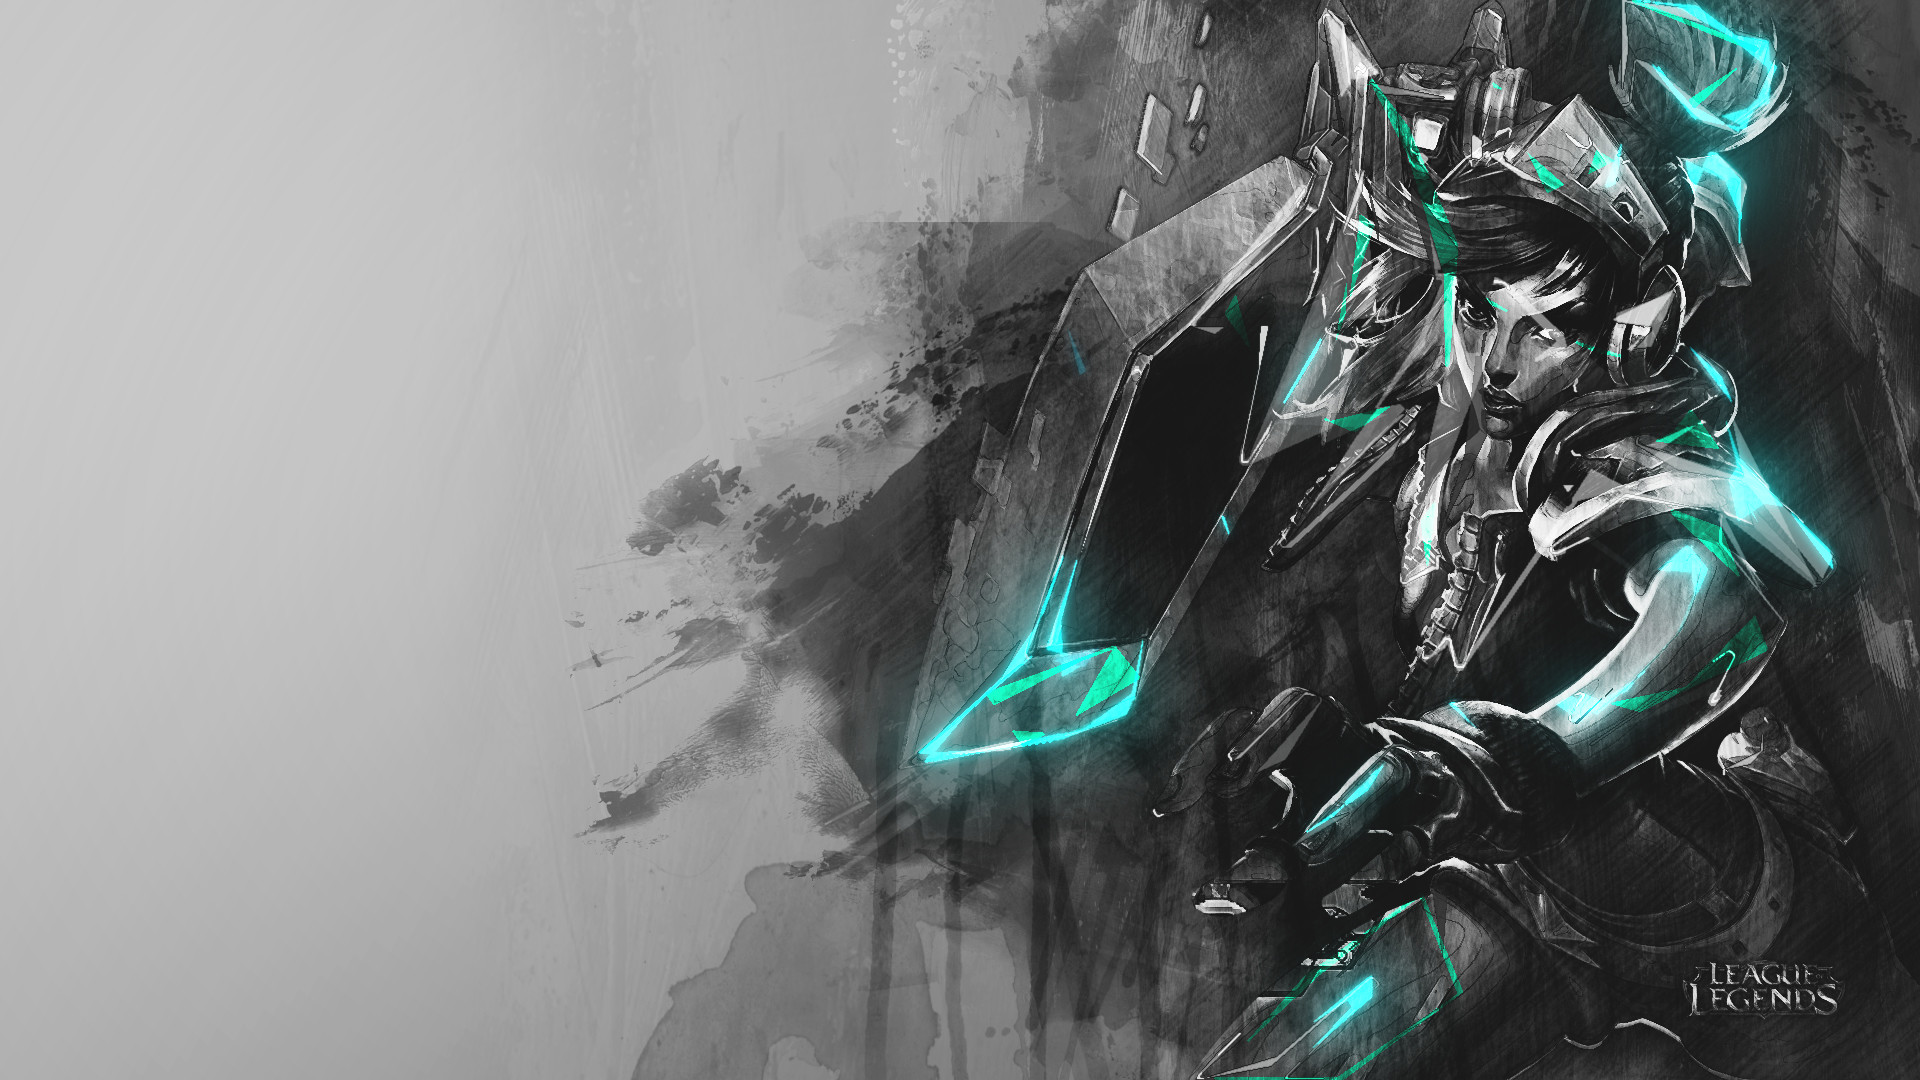 Free Battle Bunny Riven Wallpaper 1920x1080